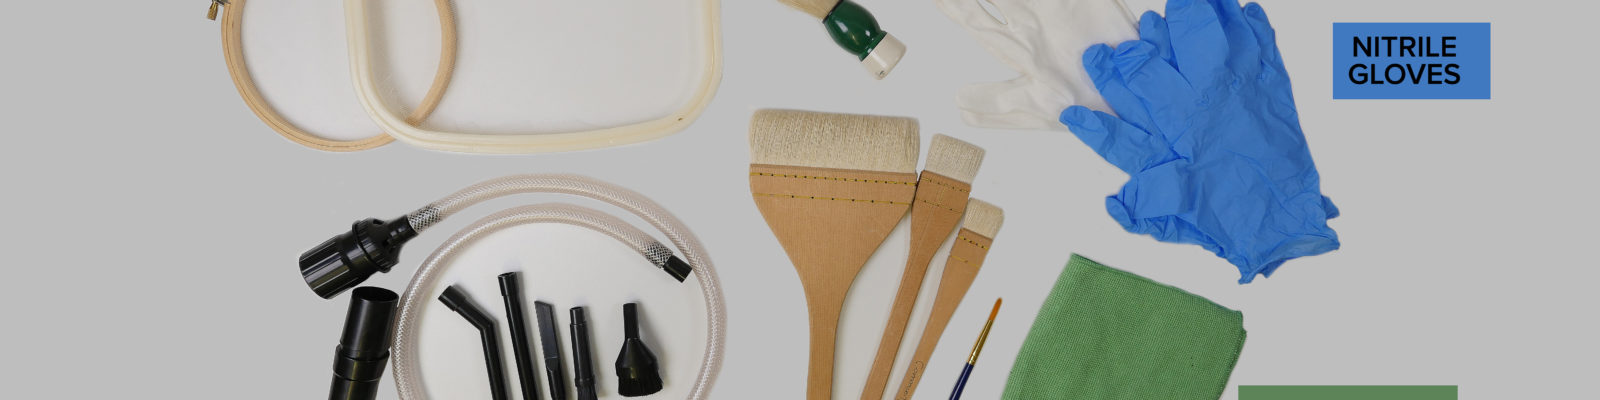 Selection of cleaning tools layed out on a table.